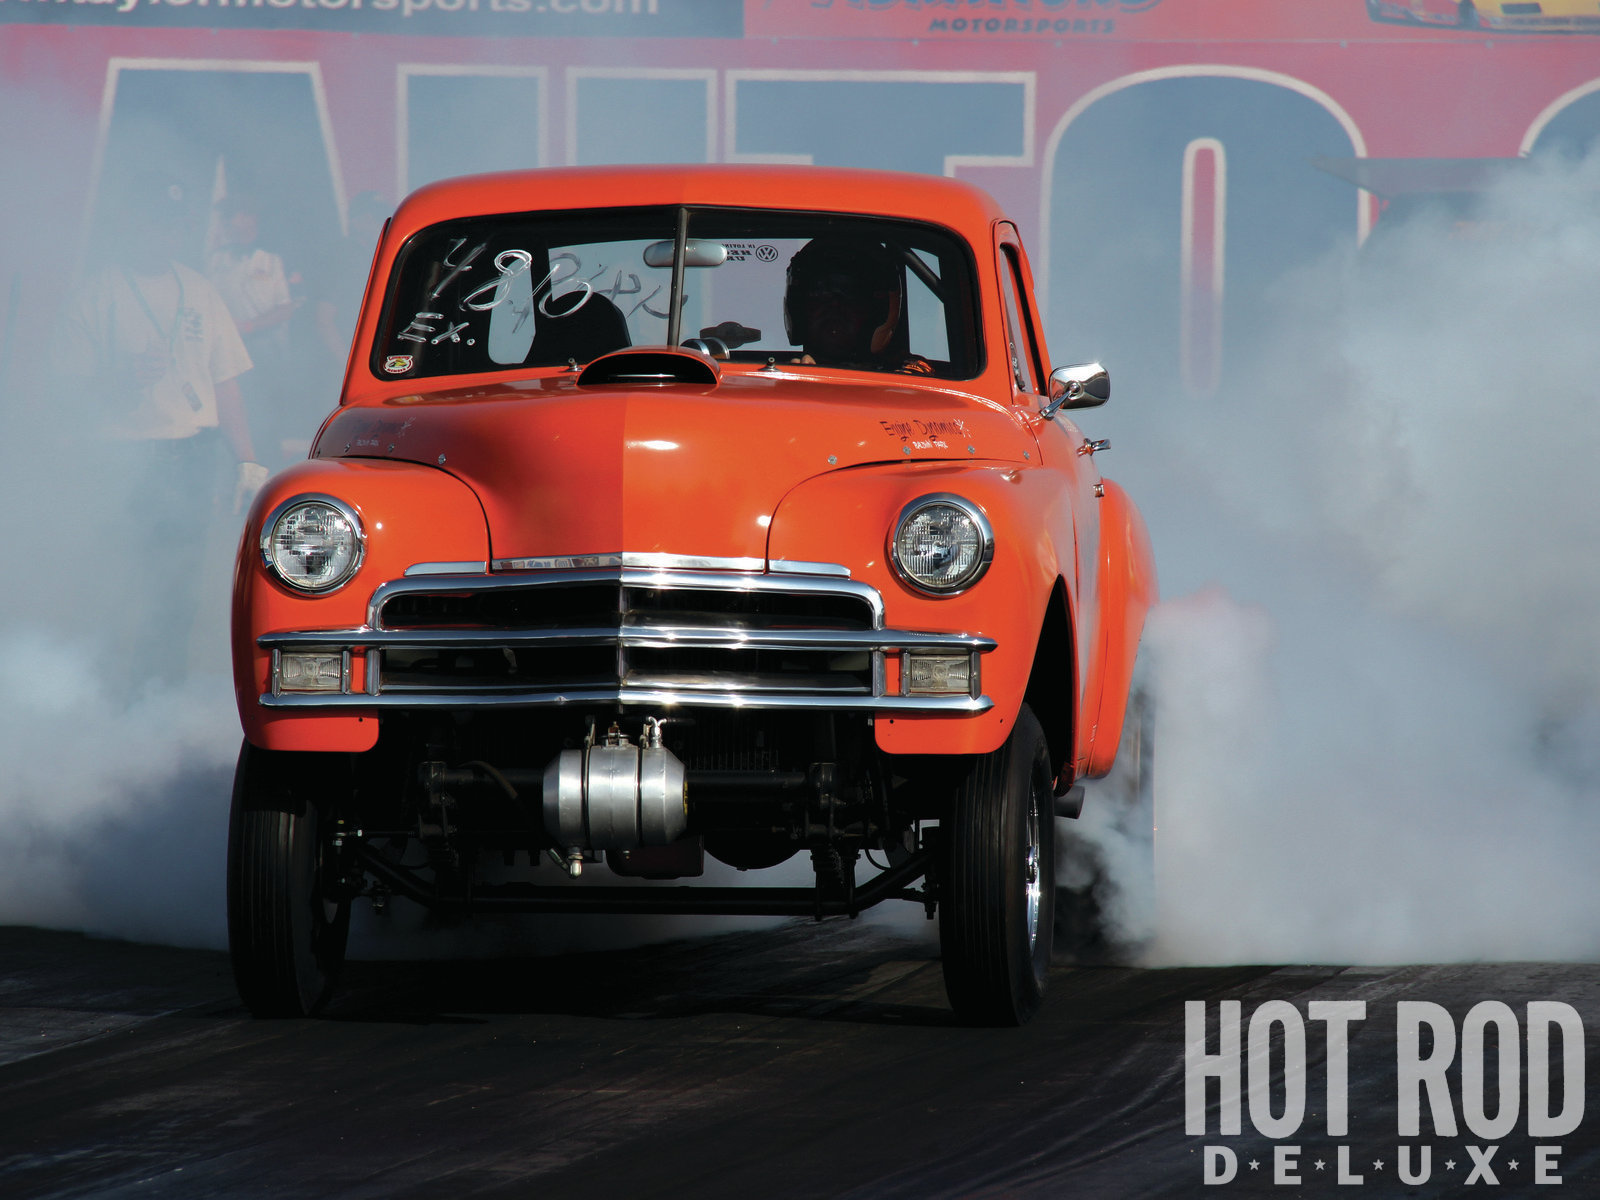 Paul Soliz's 502 Chevy-powered '50 Plymouth coupe was built in the '60s and produces more smoke than ever, immediately followed by mid-11-second bursts.